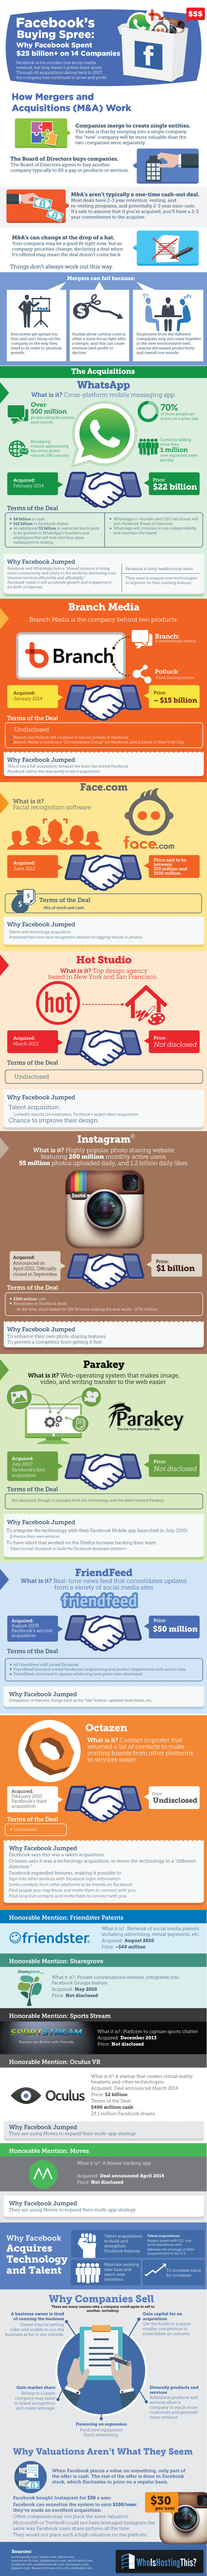 Facebook's Buying Spree: Why Facebook Spent $25 Billion+ On 14 Companies - #infographic #socialmedia